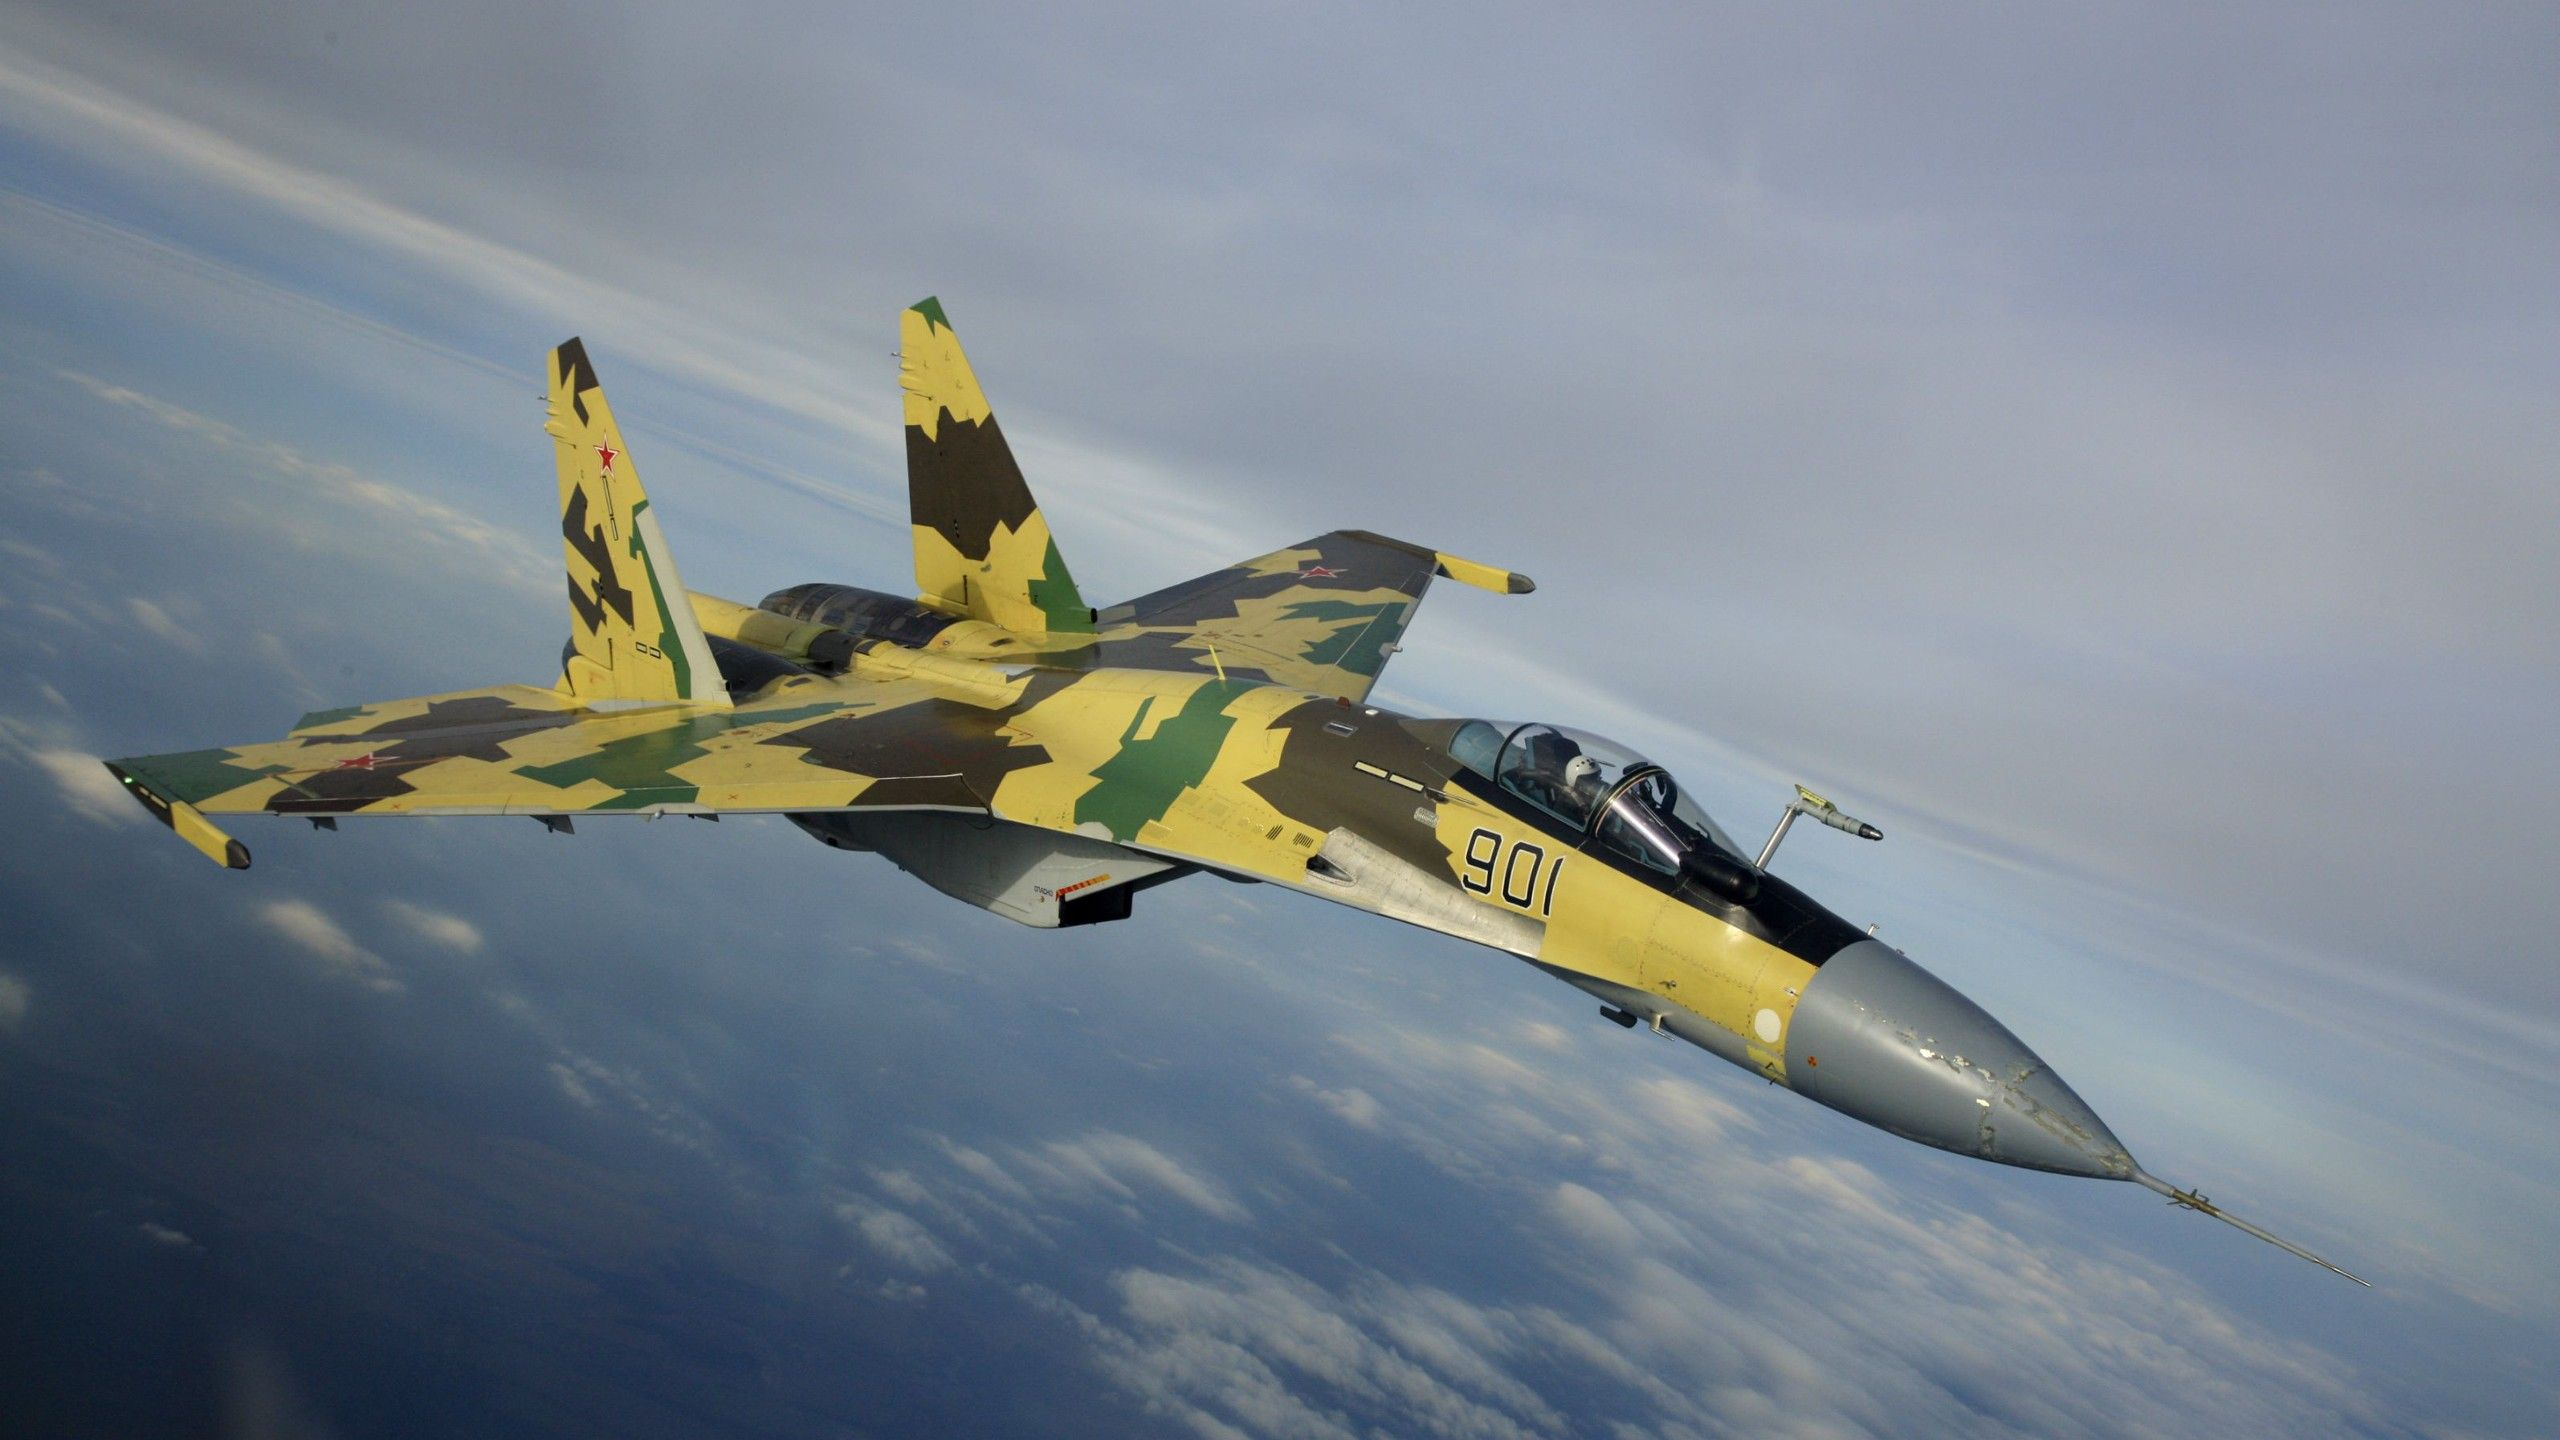 Military Aircraft Jet Fighter Sukhoi Su 35 Russian Air Force Wallpaper